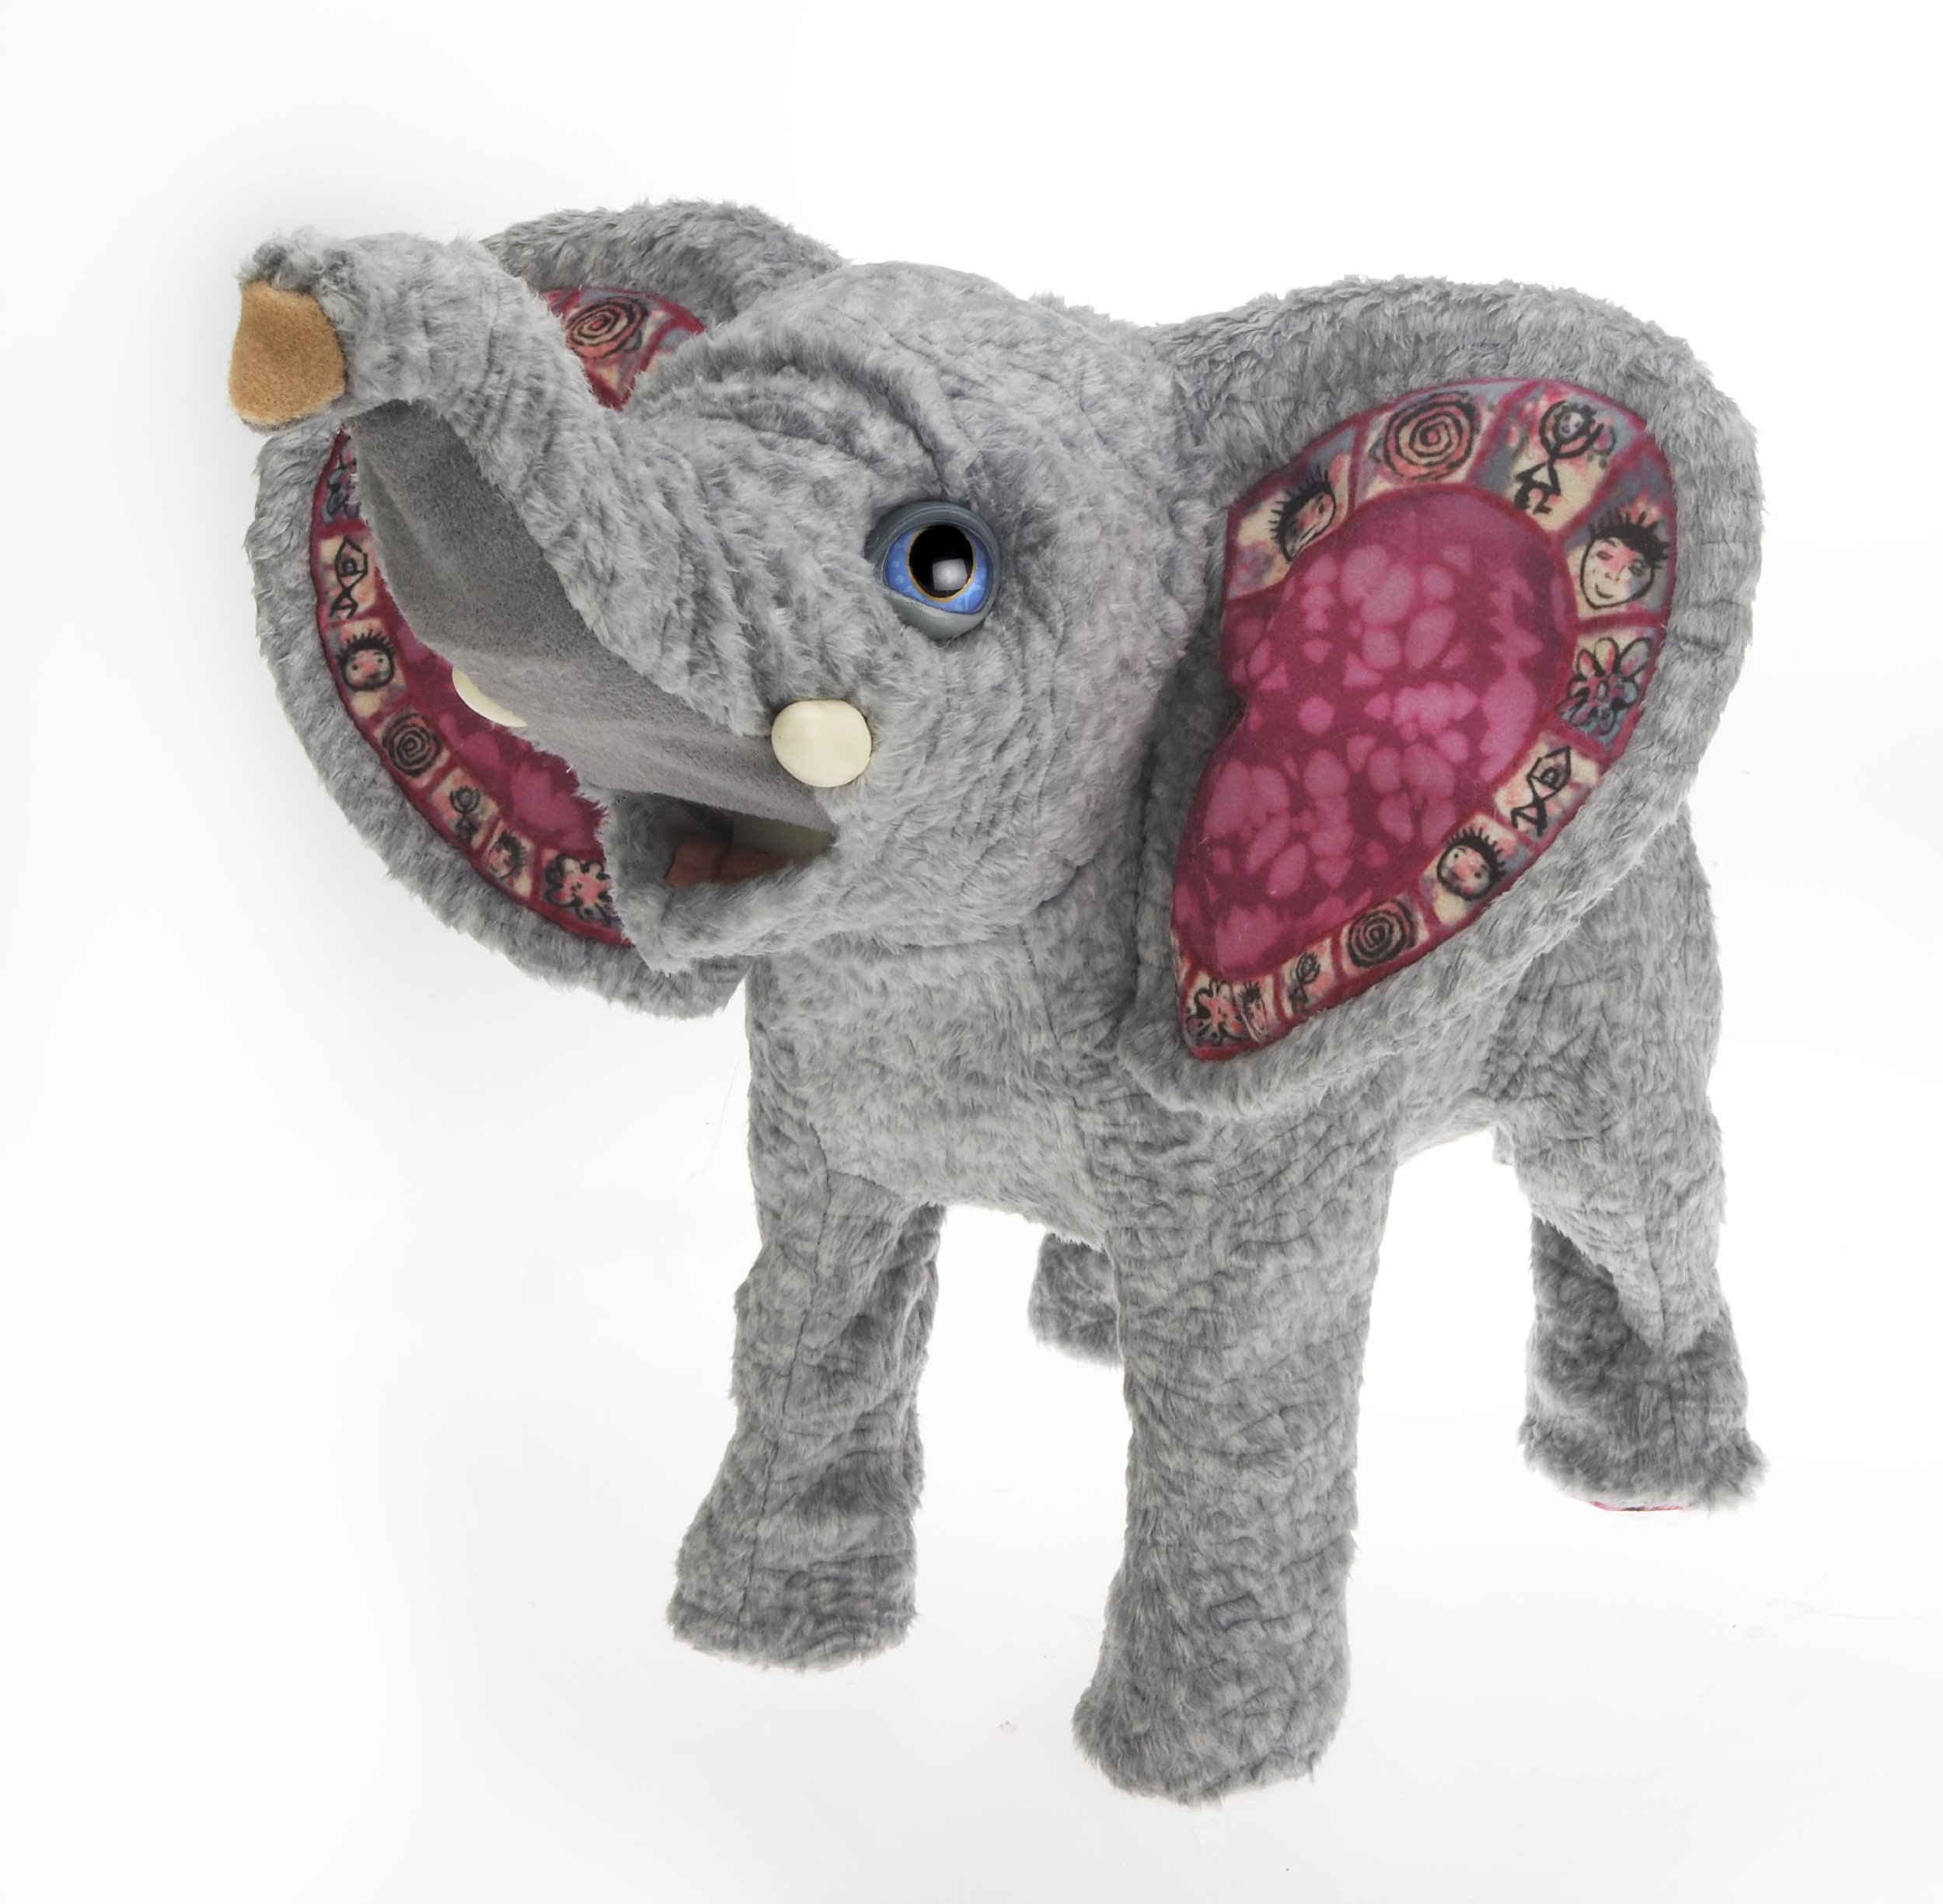 FurReal Friends Zambi The Baby Elephant by FurReal (Image #1)